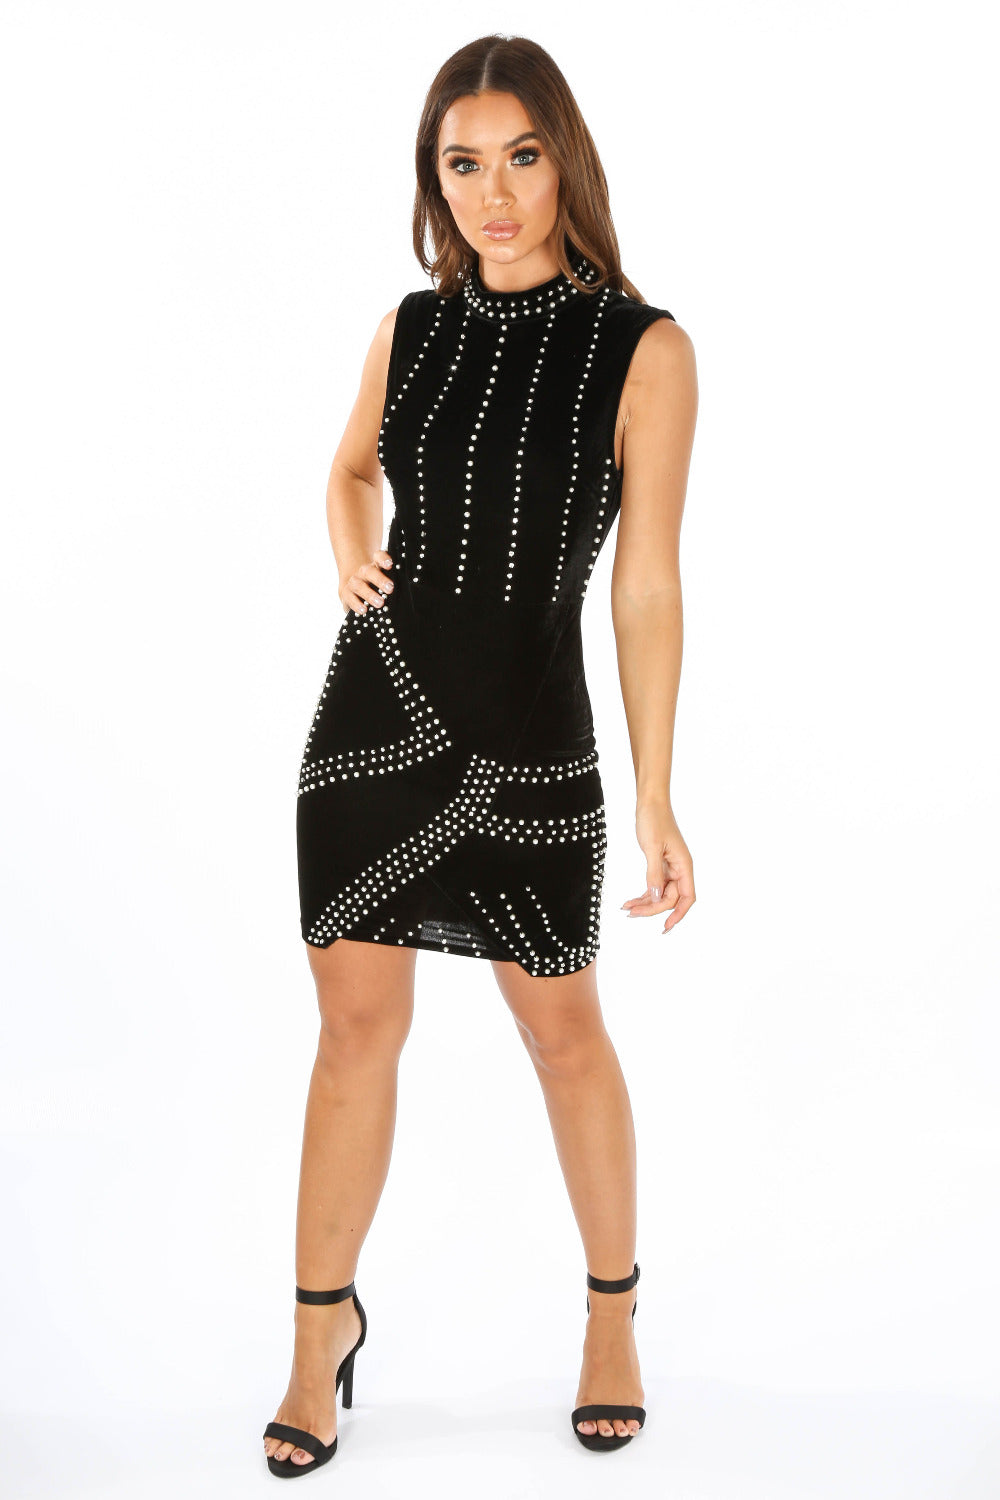 Black Velvet Pearl Embellished Bodycon Mini Dress